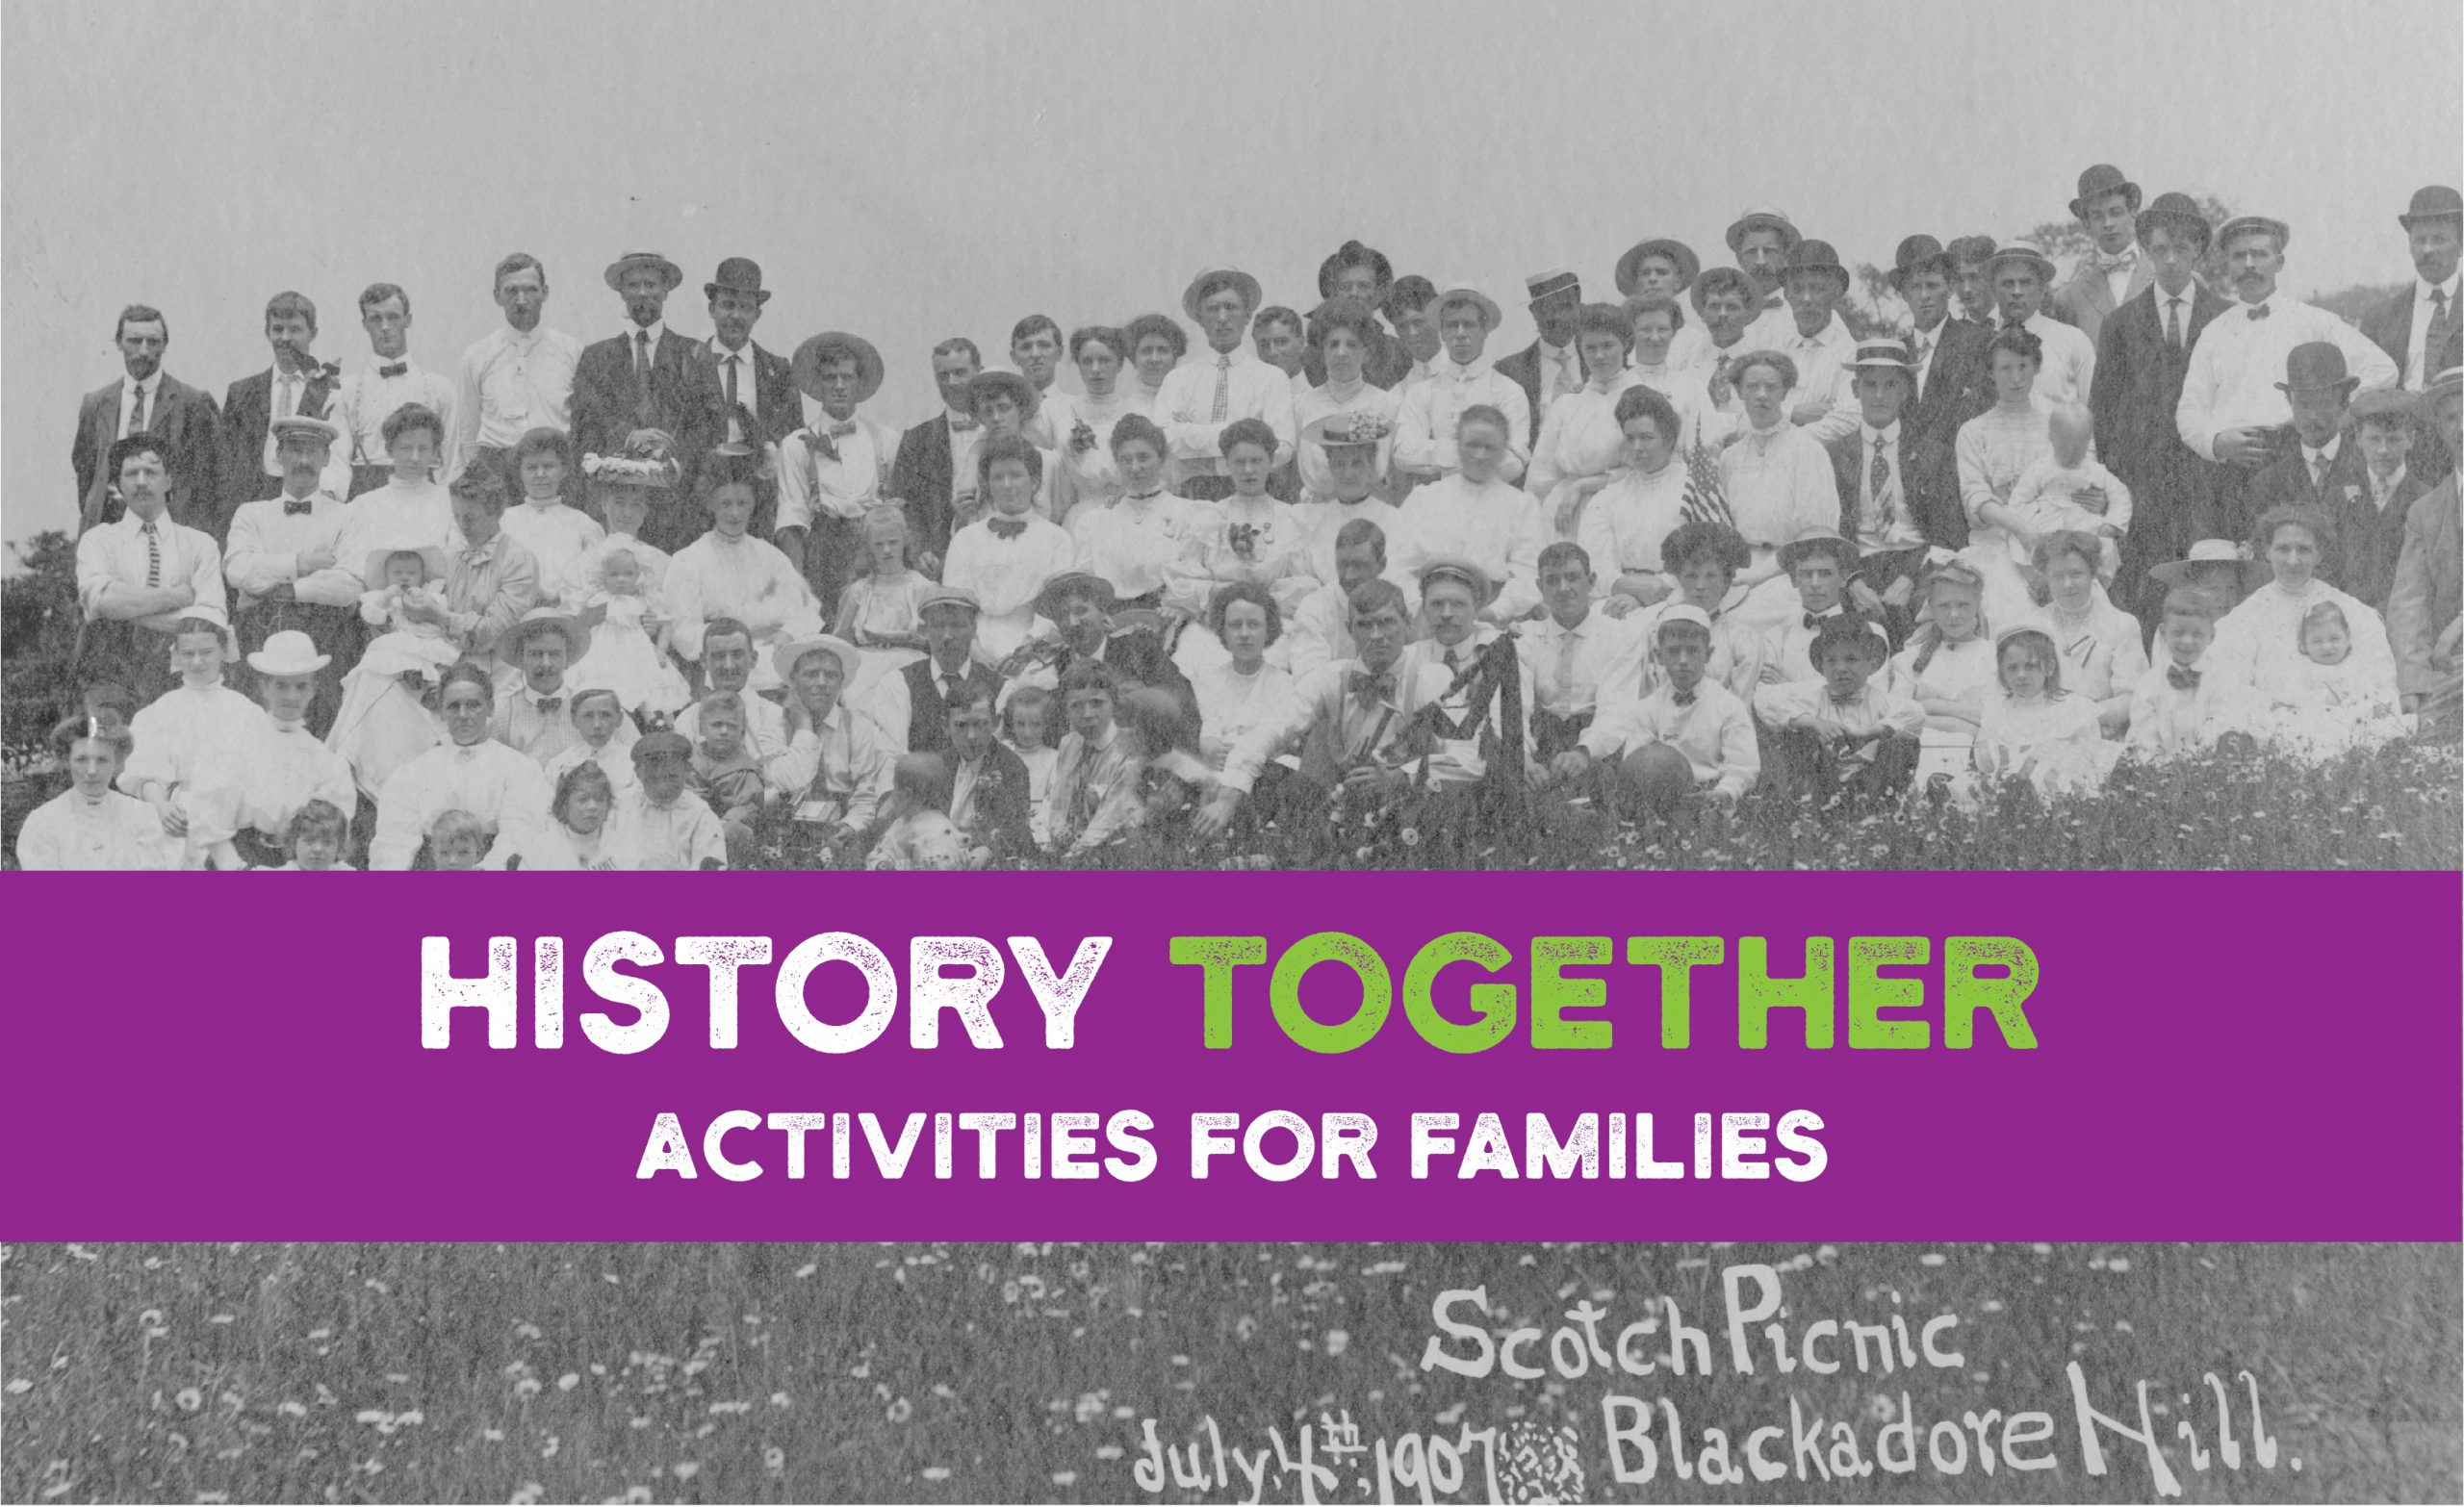 History Together: Activities for Families